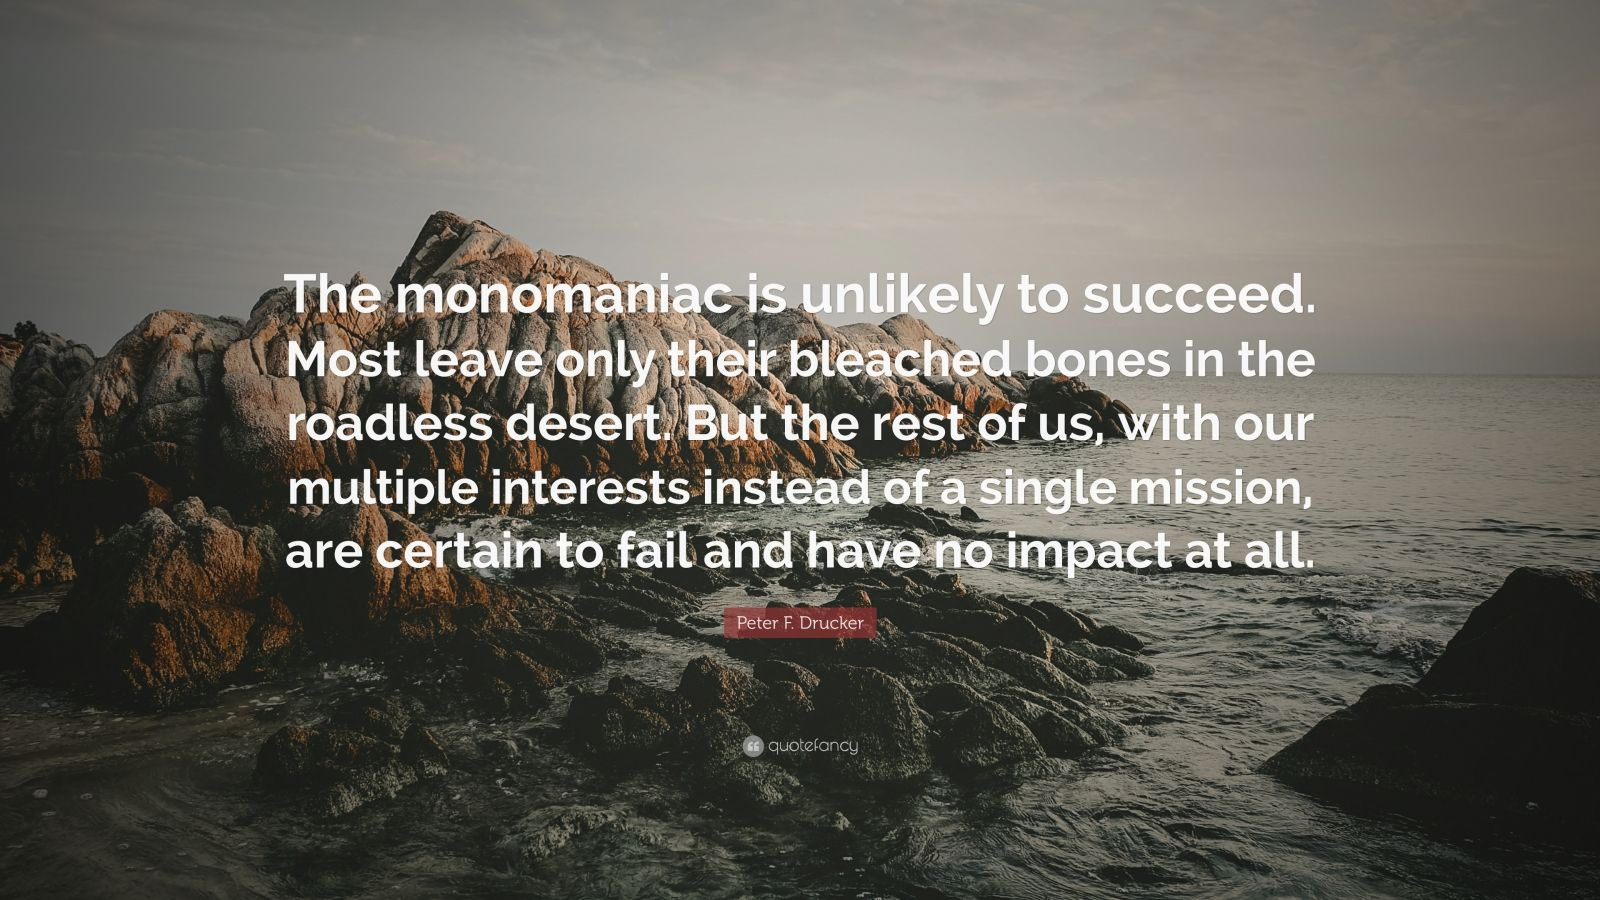 "Peter F. Drucker Quote: ""The monomaniac is unlikely to succeed. Most leave only their bleached bones in the roadless desert. But the rest of us, with our multiple interests instead of a single mission, are certain to fail and have no impact at all."""